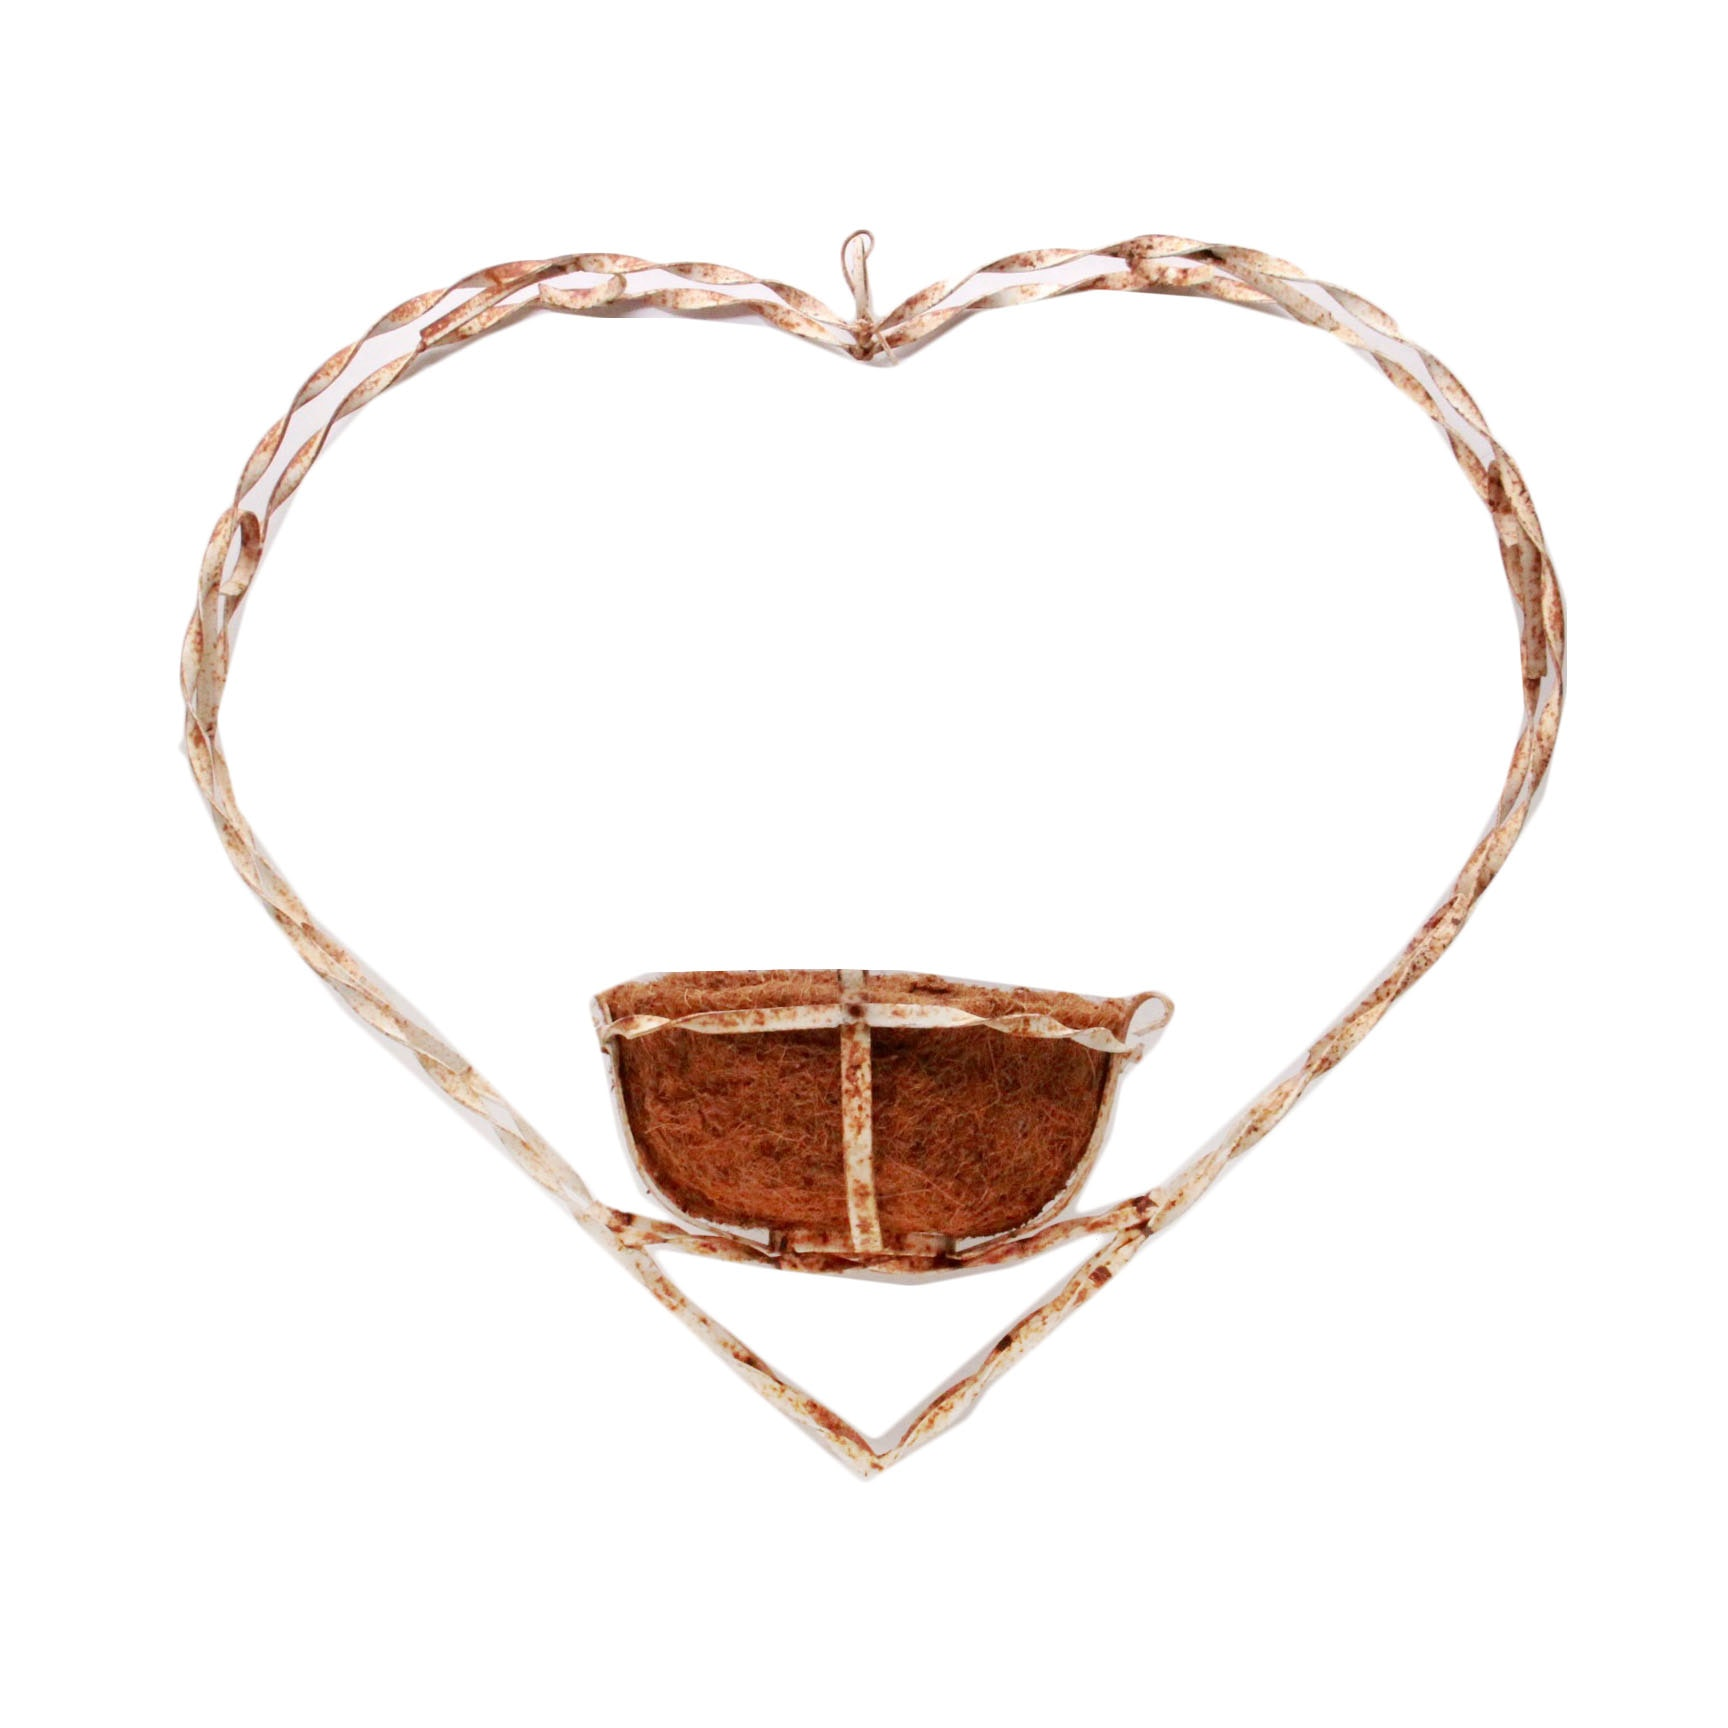 Heart Shaped Rustic Wrought Iron Hanging Planter Ebth